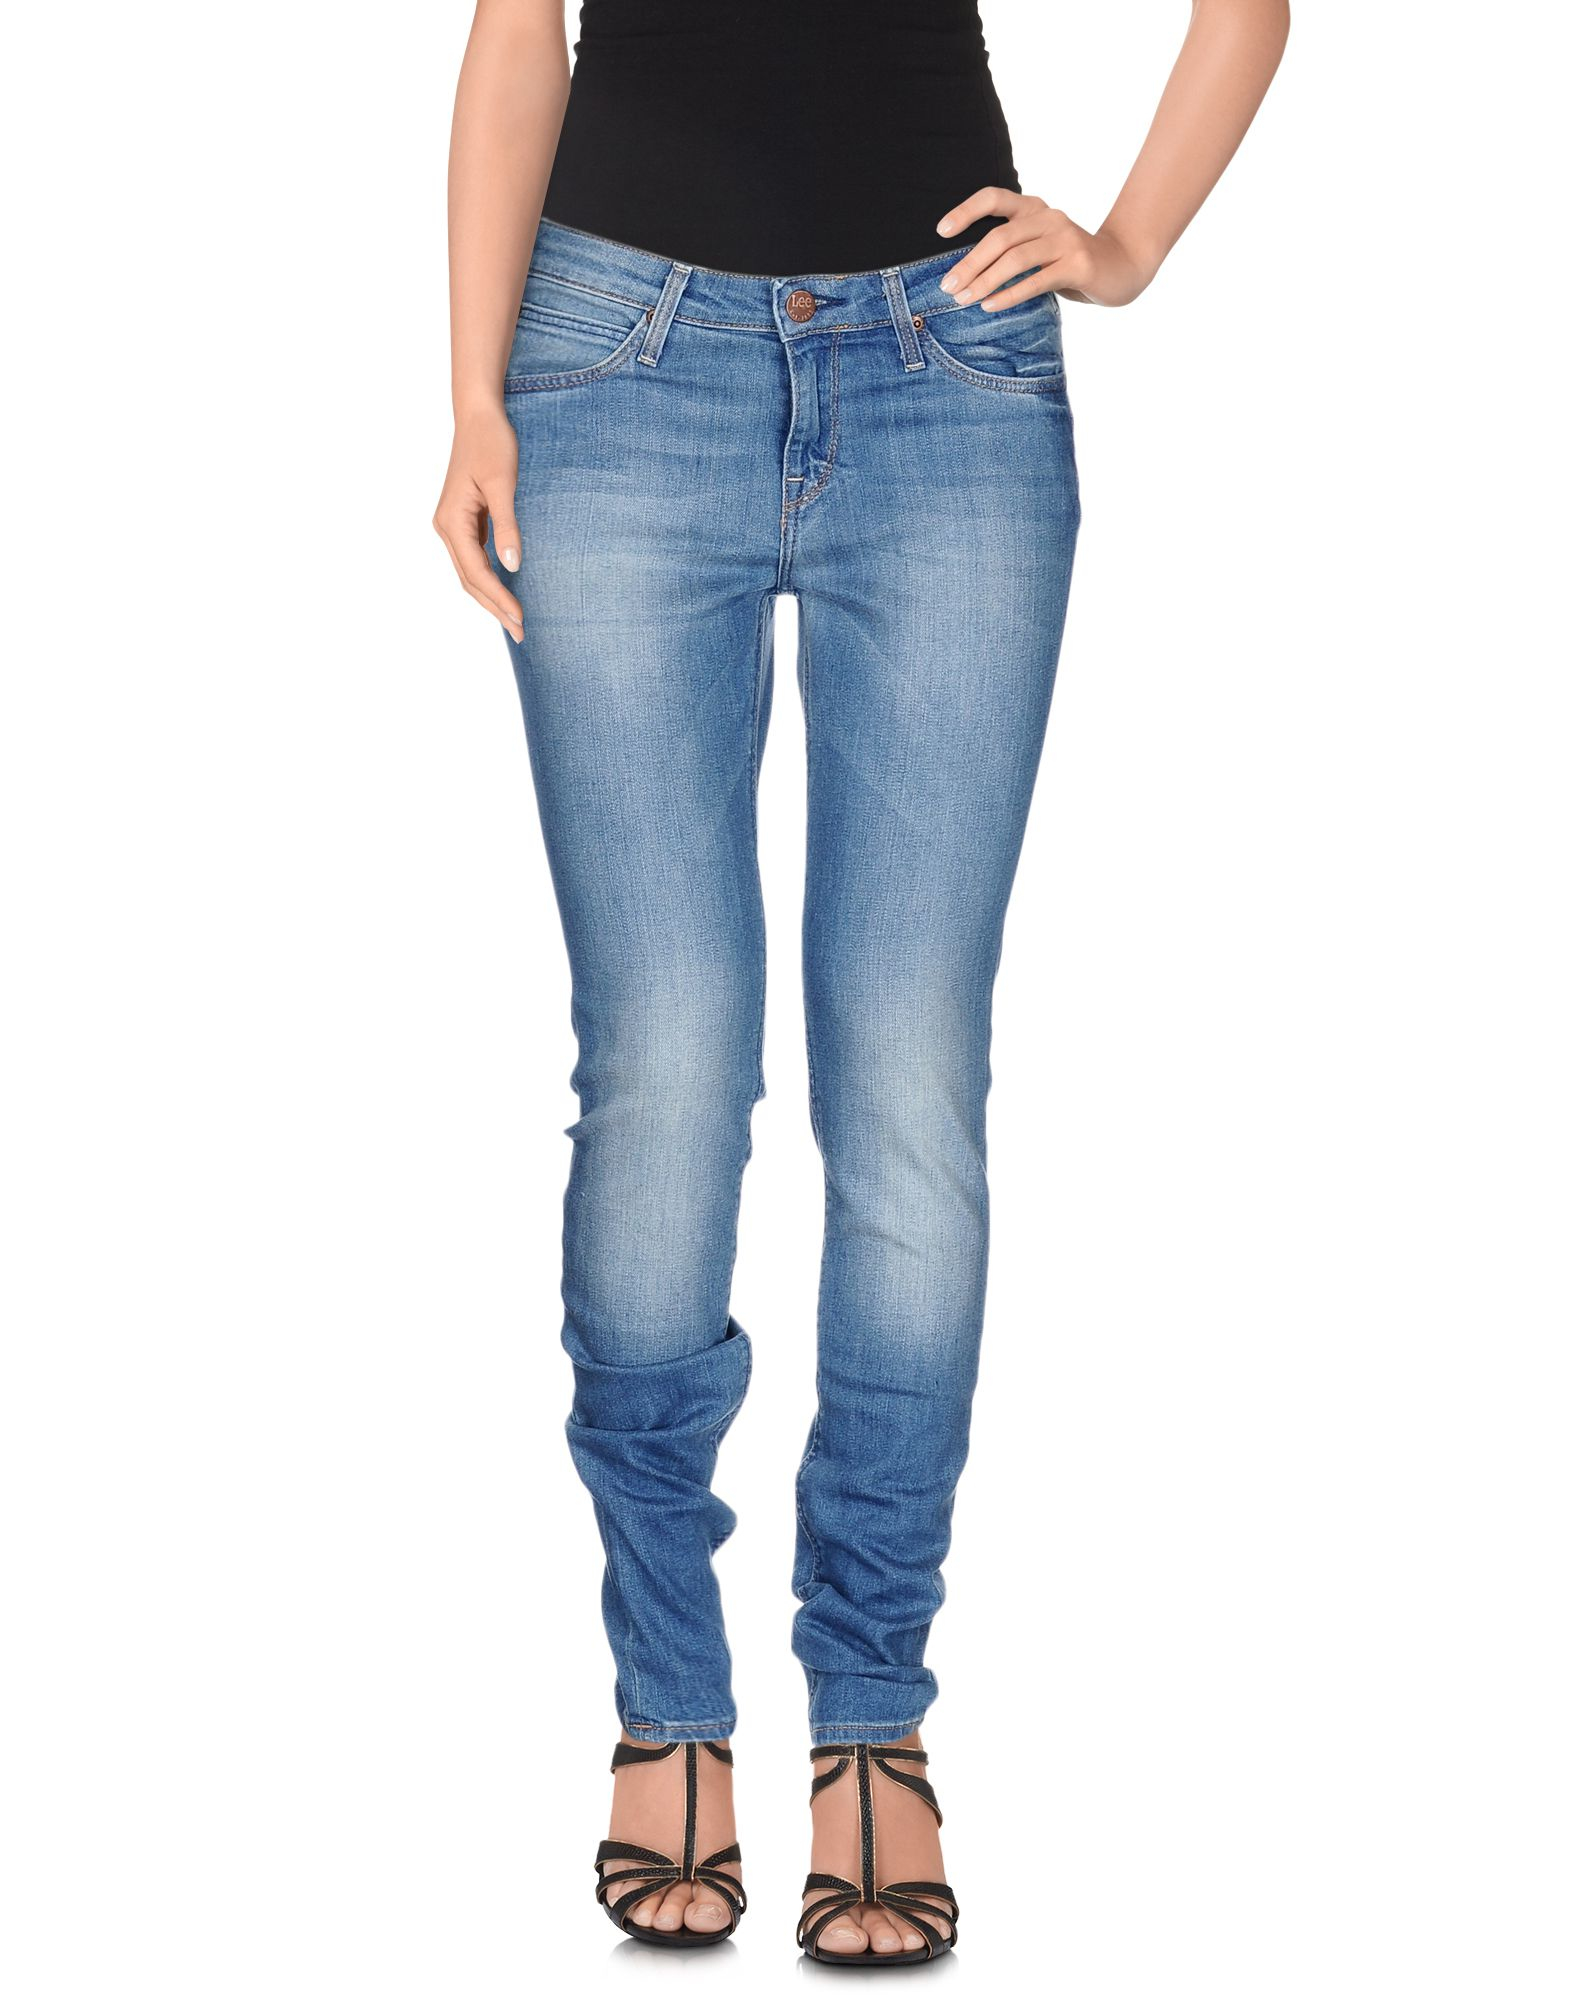 lee jeans for women - photo #13